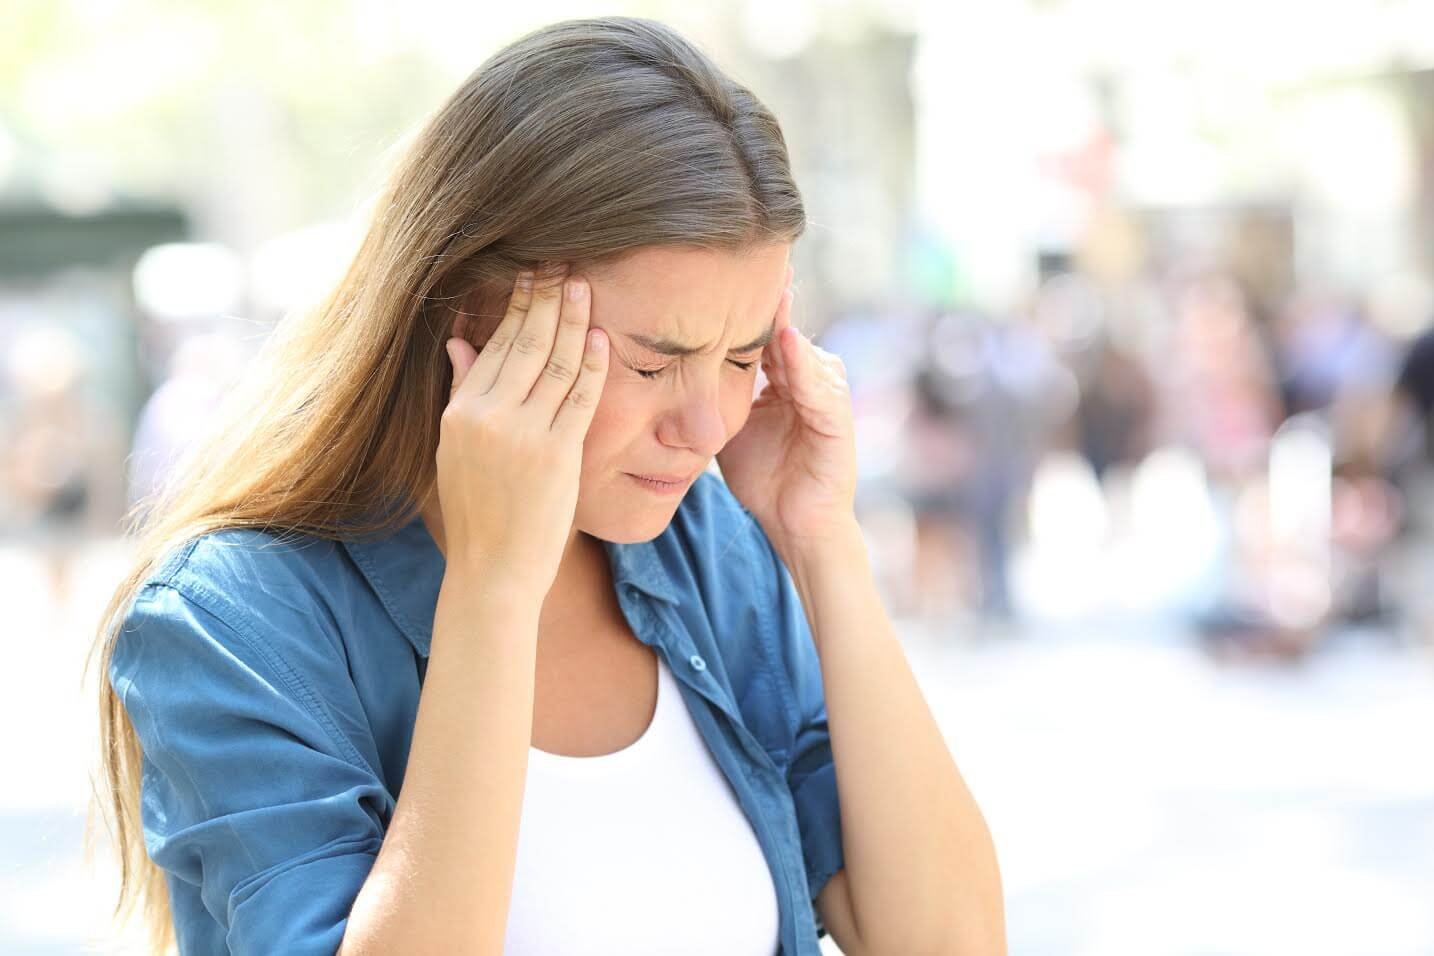 Natural Relief from Migraines with Chiropractic Care